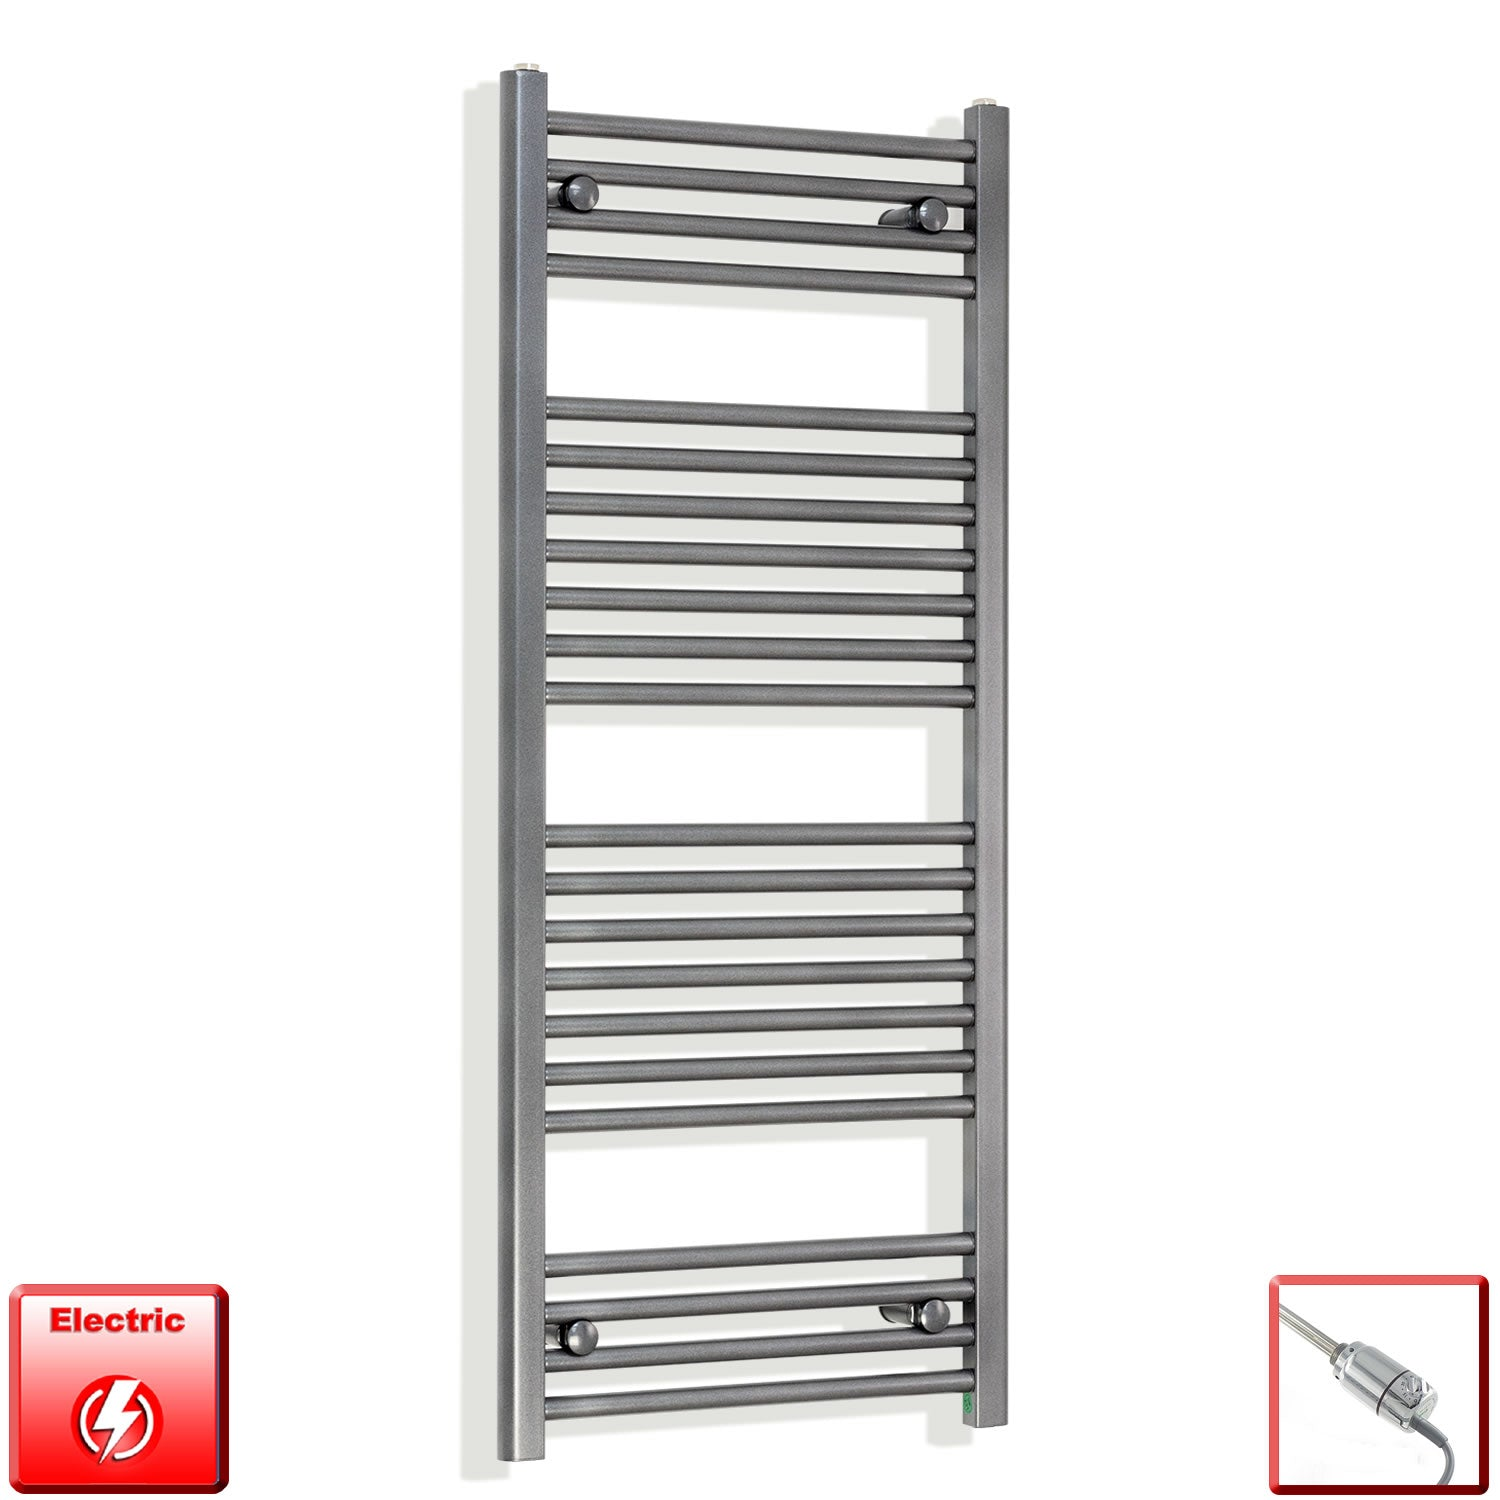 1200 mm High 500 mm Wide Heated Flat Towel Rail Radiator Anthracite  Electric Prefilled with thermostatic heating element